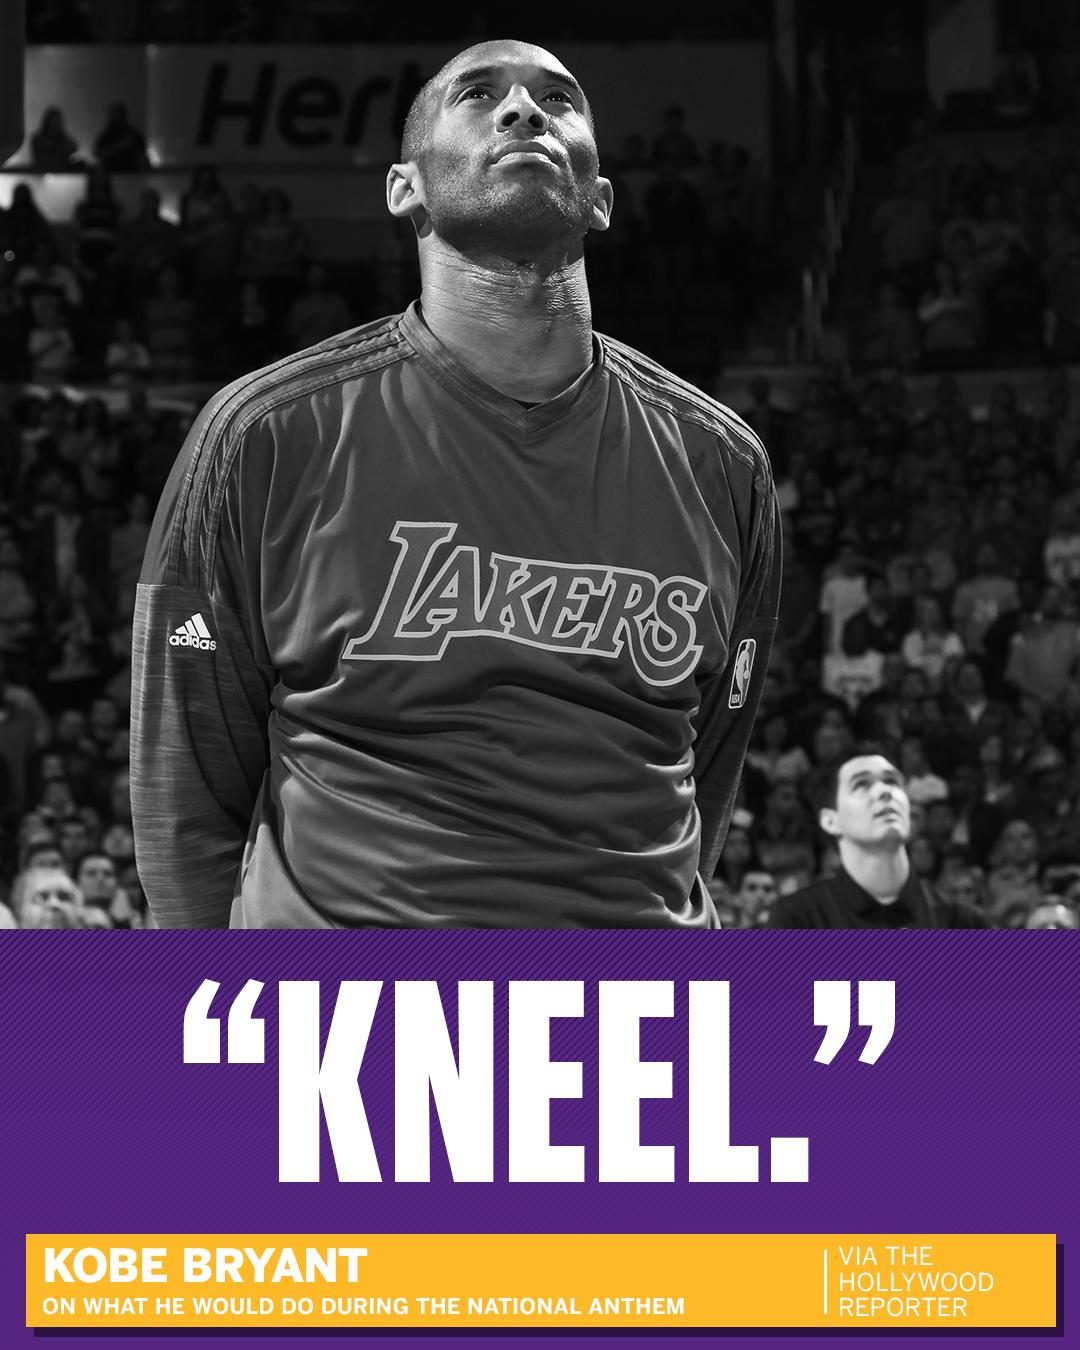 Kobe Bryant knows what he would do during the national anthem if he were still playing. https://t.co/rTwDXlHB7l